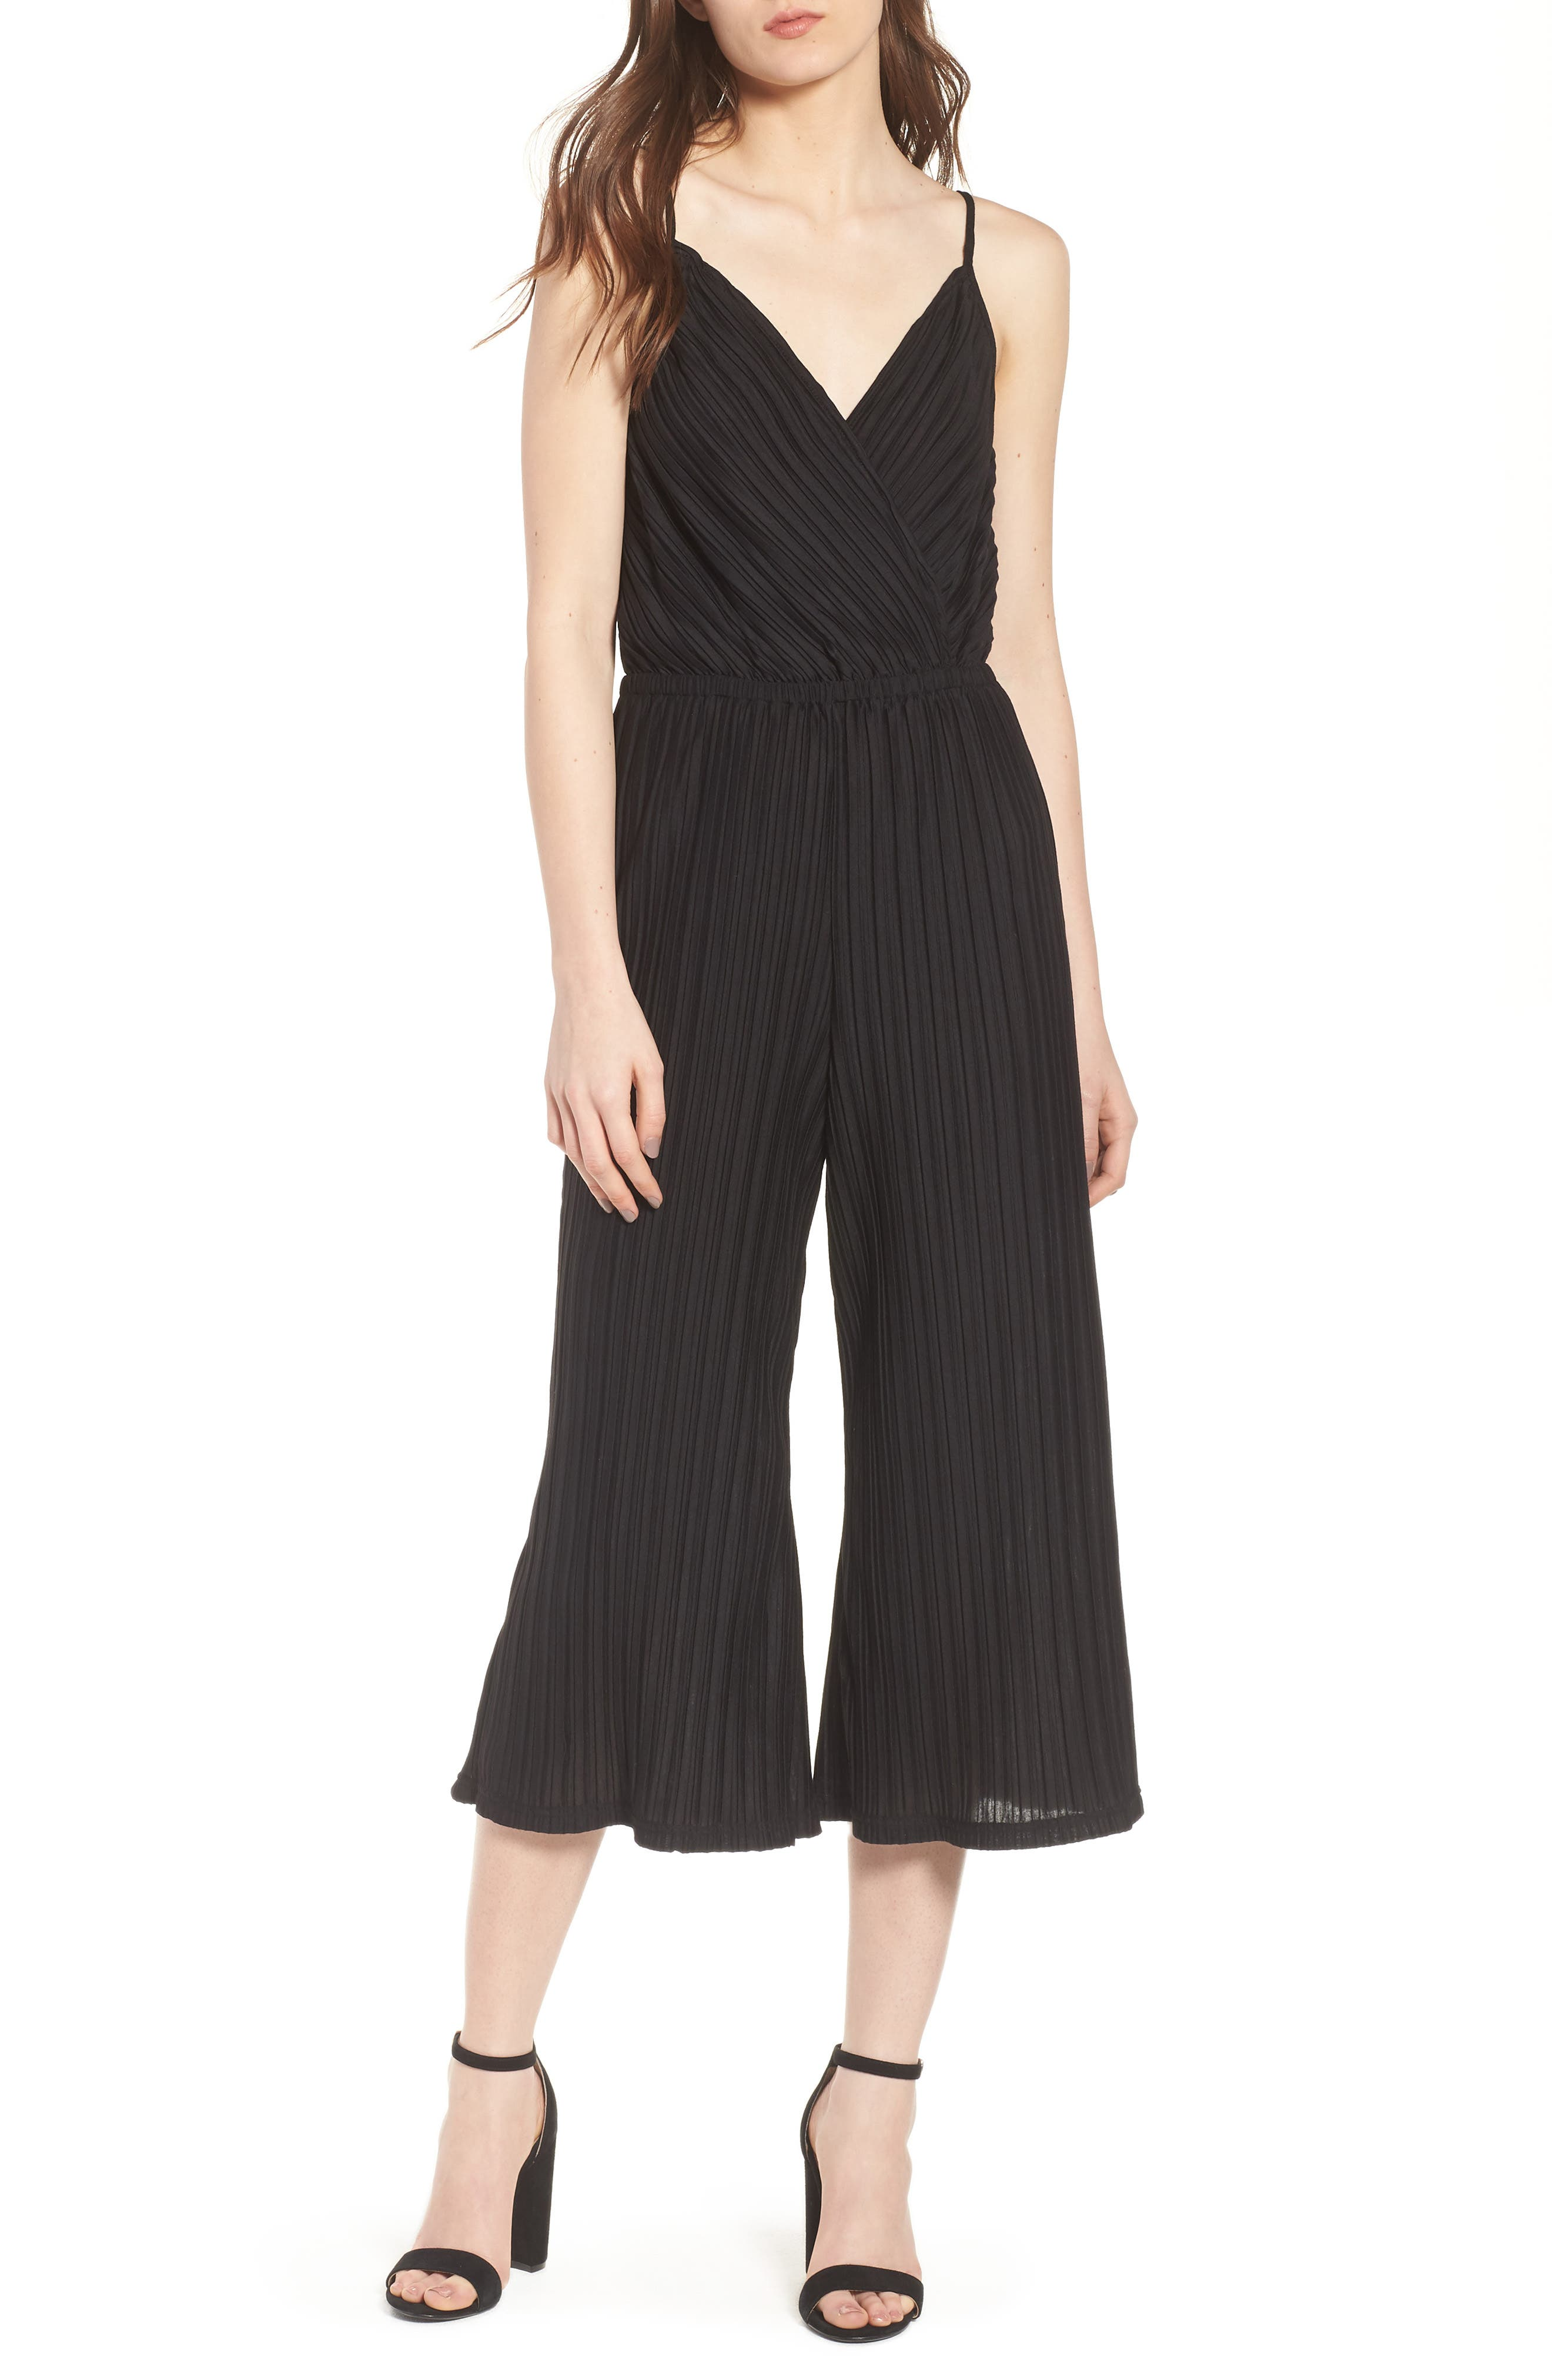 CUPCAKES AND CASHMERE Austine Pleated Jumpsuit, Main, color, 001